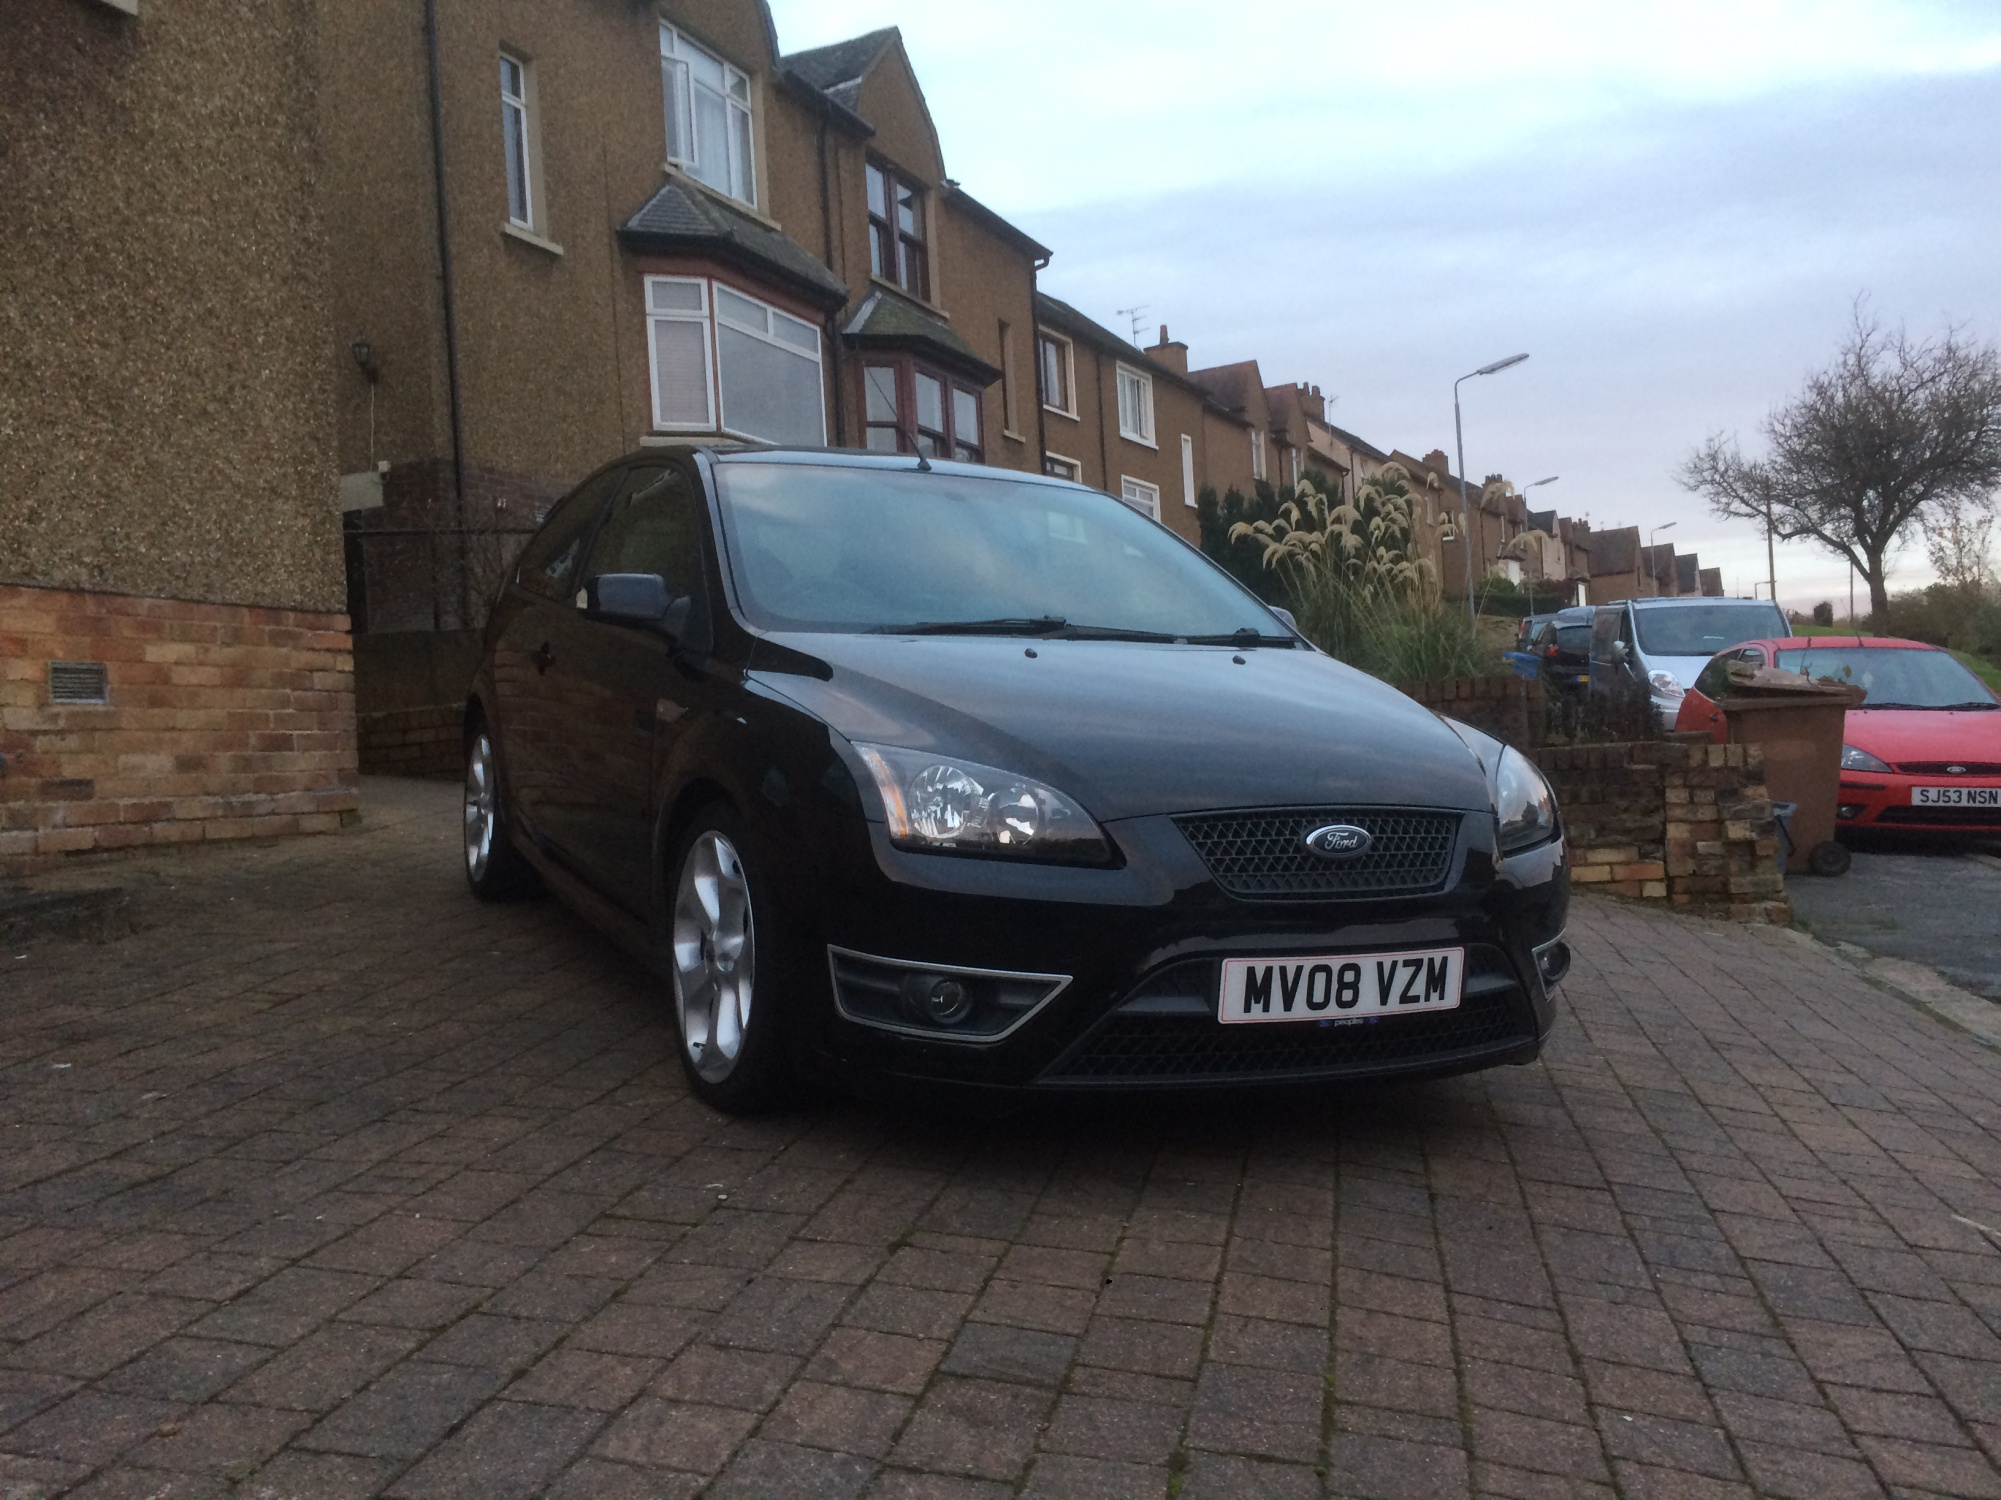 Ford focus st for sale panther black img_1282 jpg